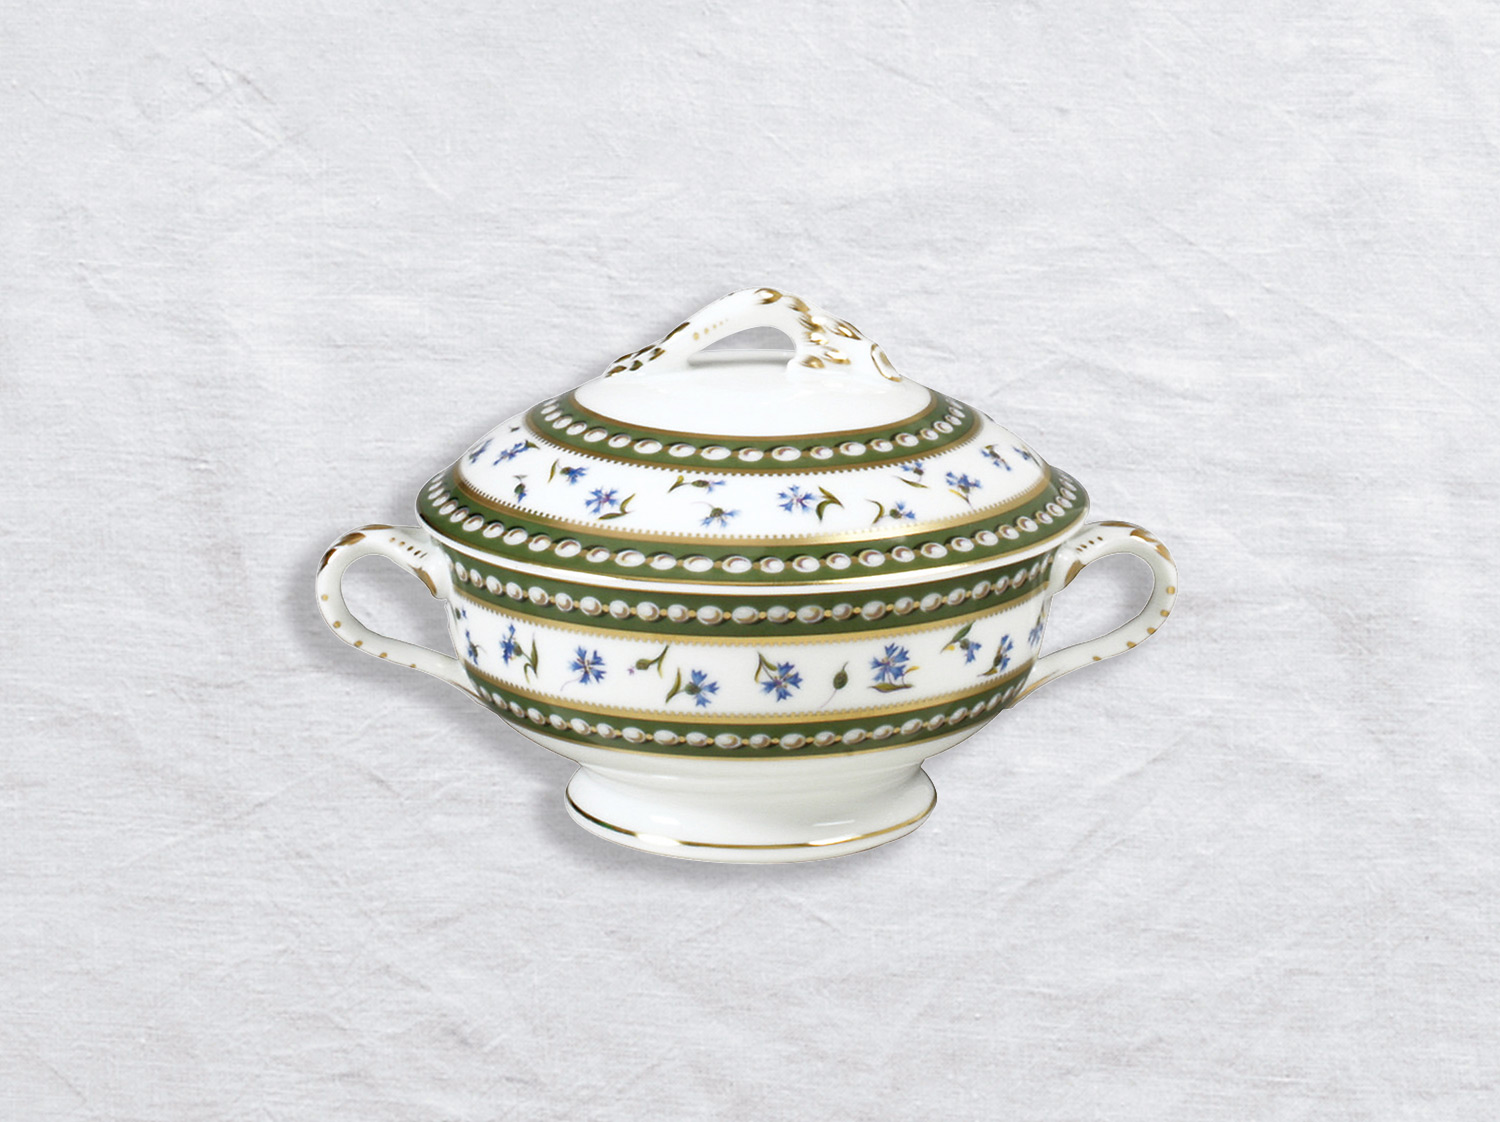 Ecuelle couverte 44 cl en porcelaine de la collection Marie-antoinette Bernardaud